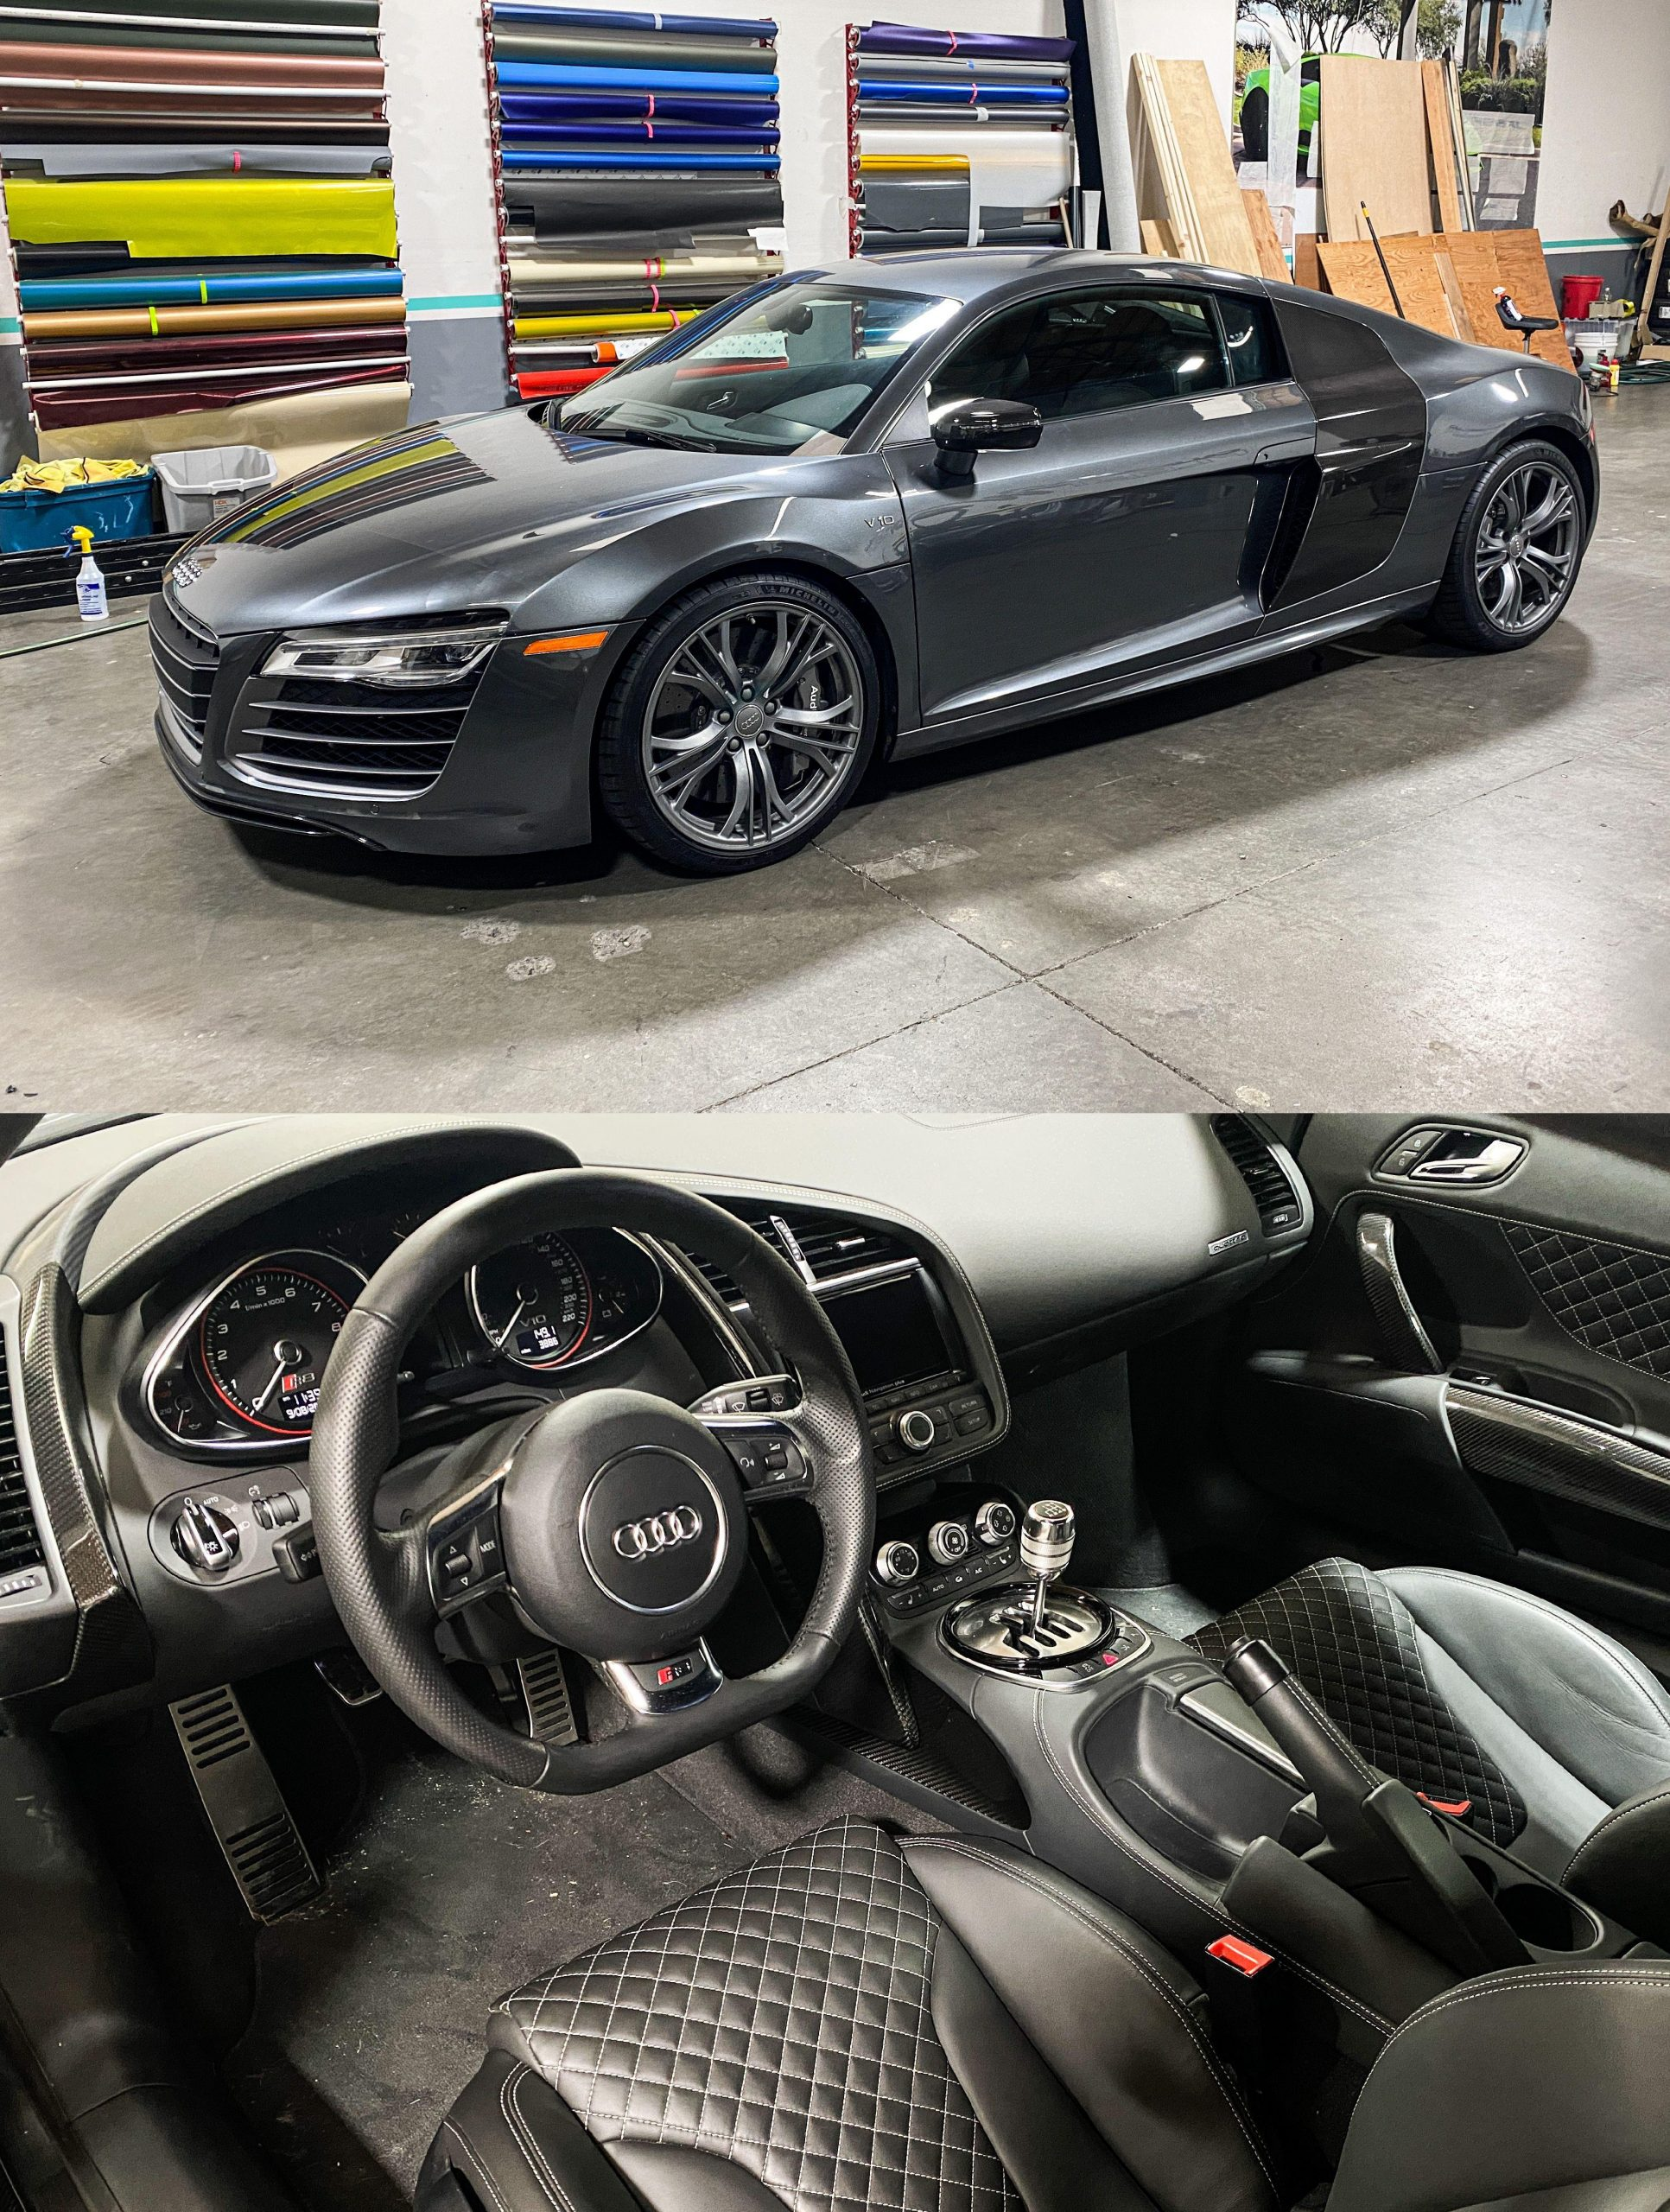 2014 V10 Audi R8 with gated manual. 3,886 miles on the odometer. In our shop for full PPF.